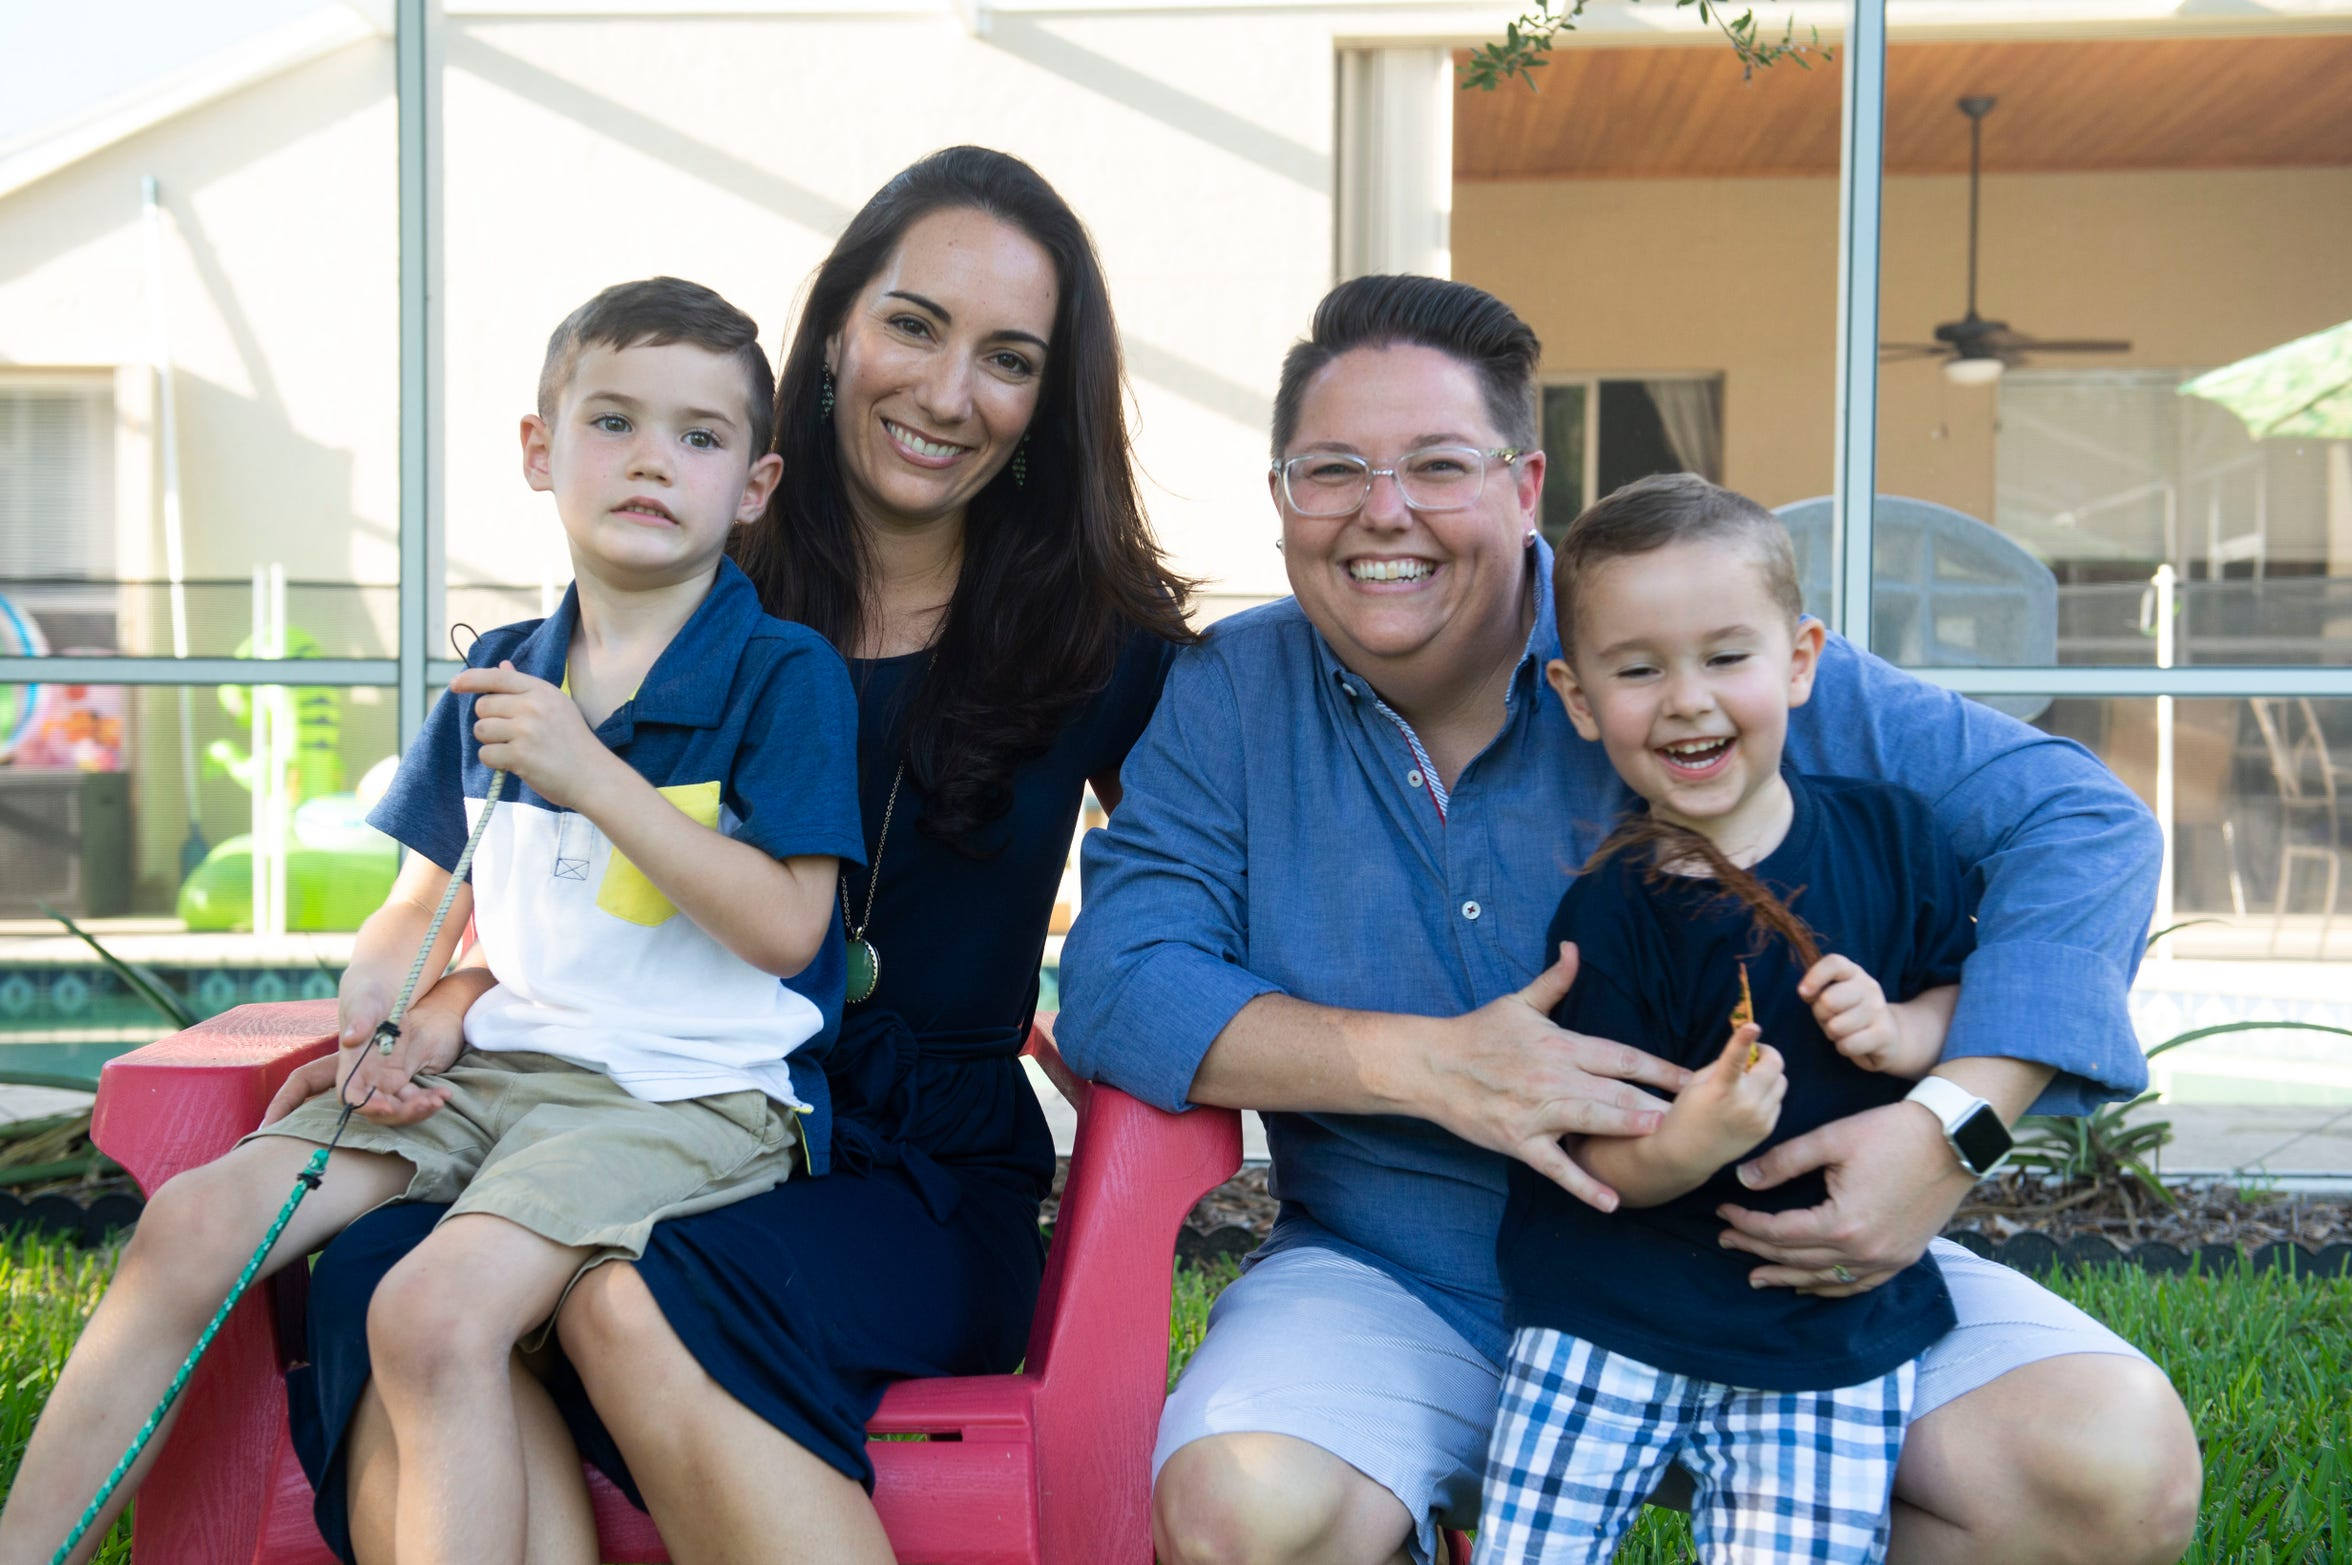 """For Lisa Davis (second from left) and her wife, Corinne Davis, the birth of their children Beckett (left), 5, and Thatcher, 3, have changed their focus on political issues. """"If you ask me what my priority is this election, it's my kids. It's education. It's school, school, school,"""" Corinne said. """"We moved up to Martin County for the great schools and are so happy with the staff where our son is,"""" Lisa said. """"But the building has been deemed functionally obsolete. It's a 60-year-old building and the funding just isn't there to replace it. Hopefully voters understand that the schools are a representation of the whole community."""""""